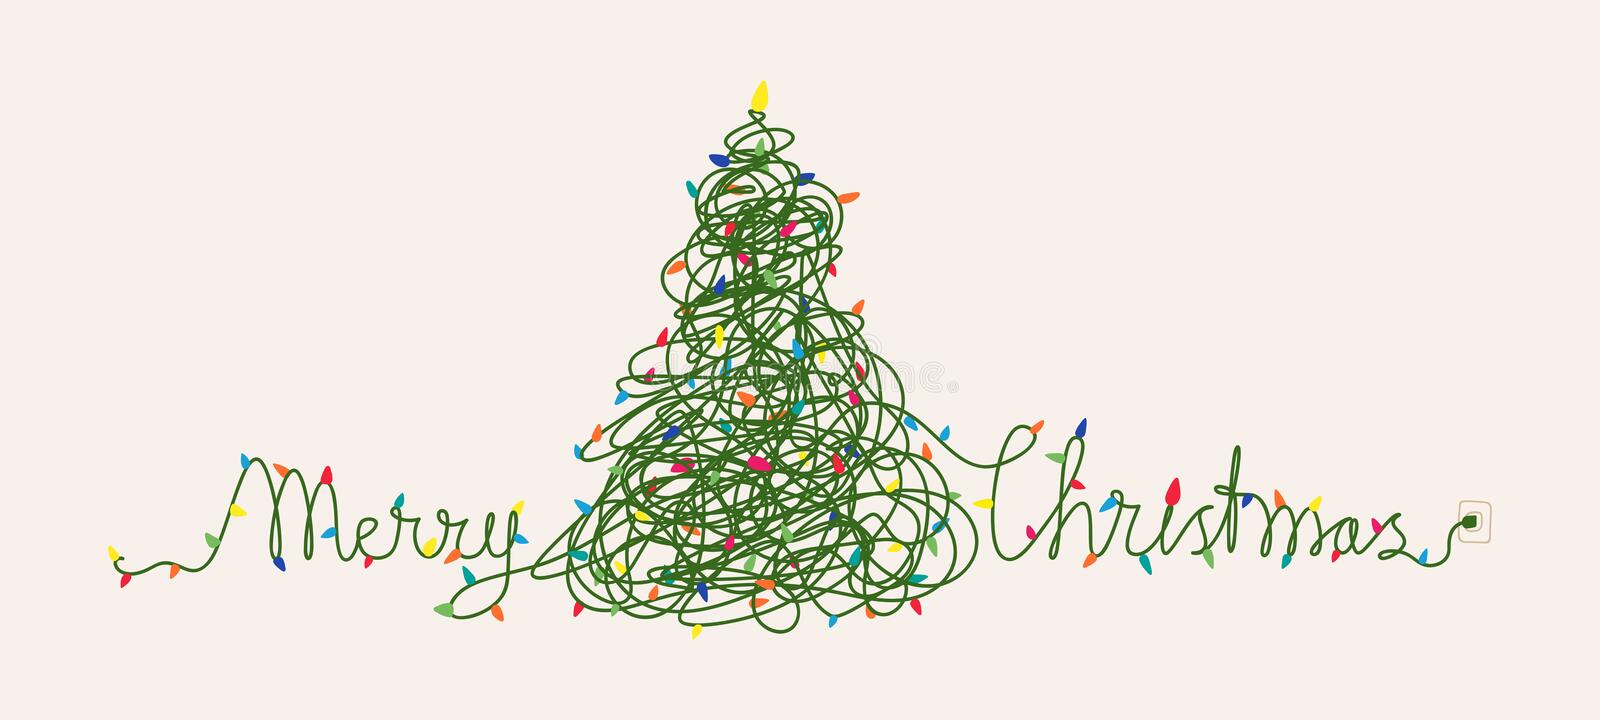 Funny Christmas card design, Christmas lights tangled up to shape Christmas tree and words Merry Christmas royalty free illustration